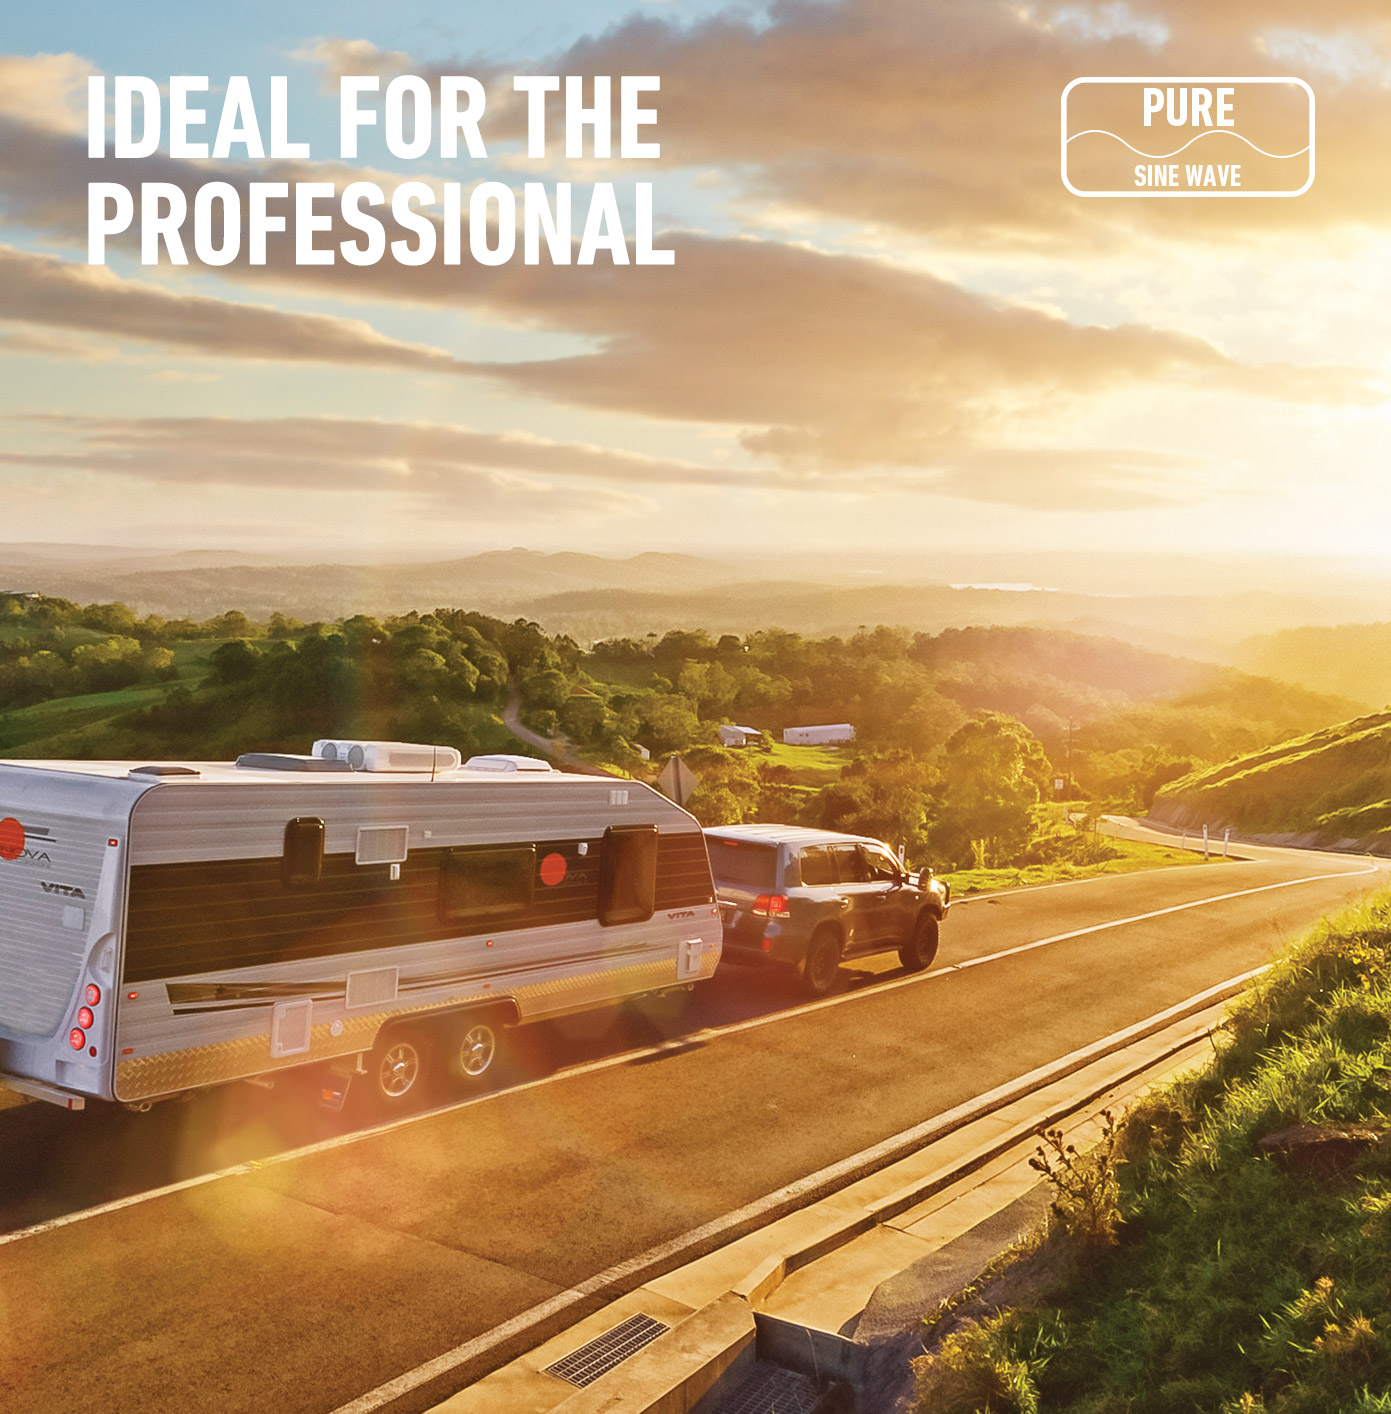 Intelli-Wave: Ideal for the professional